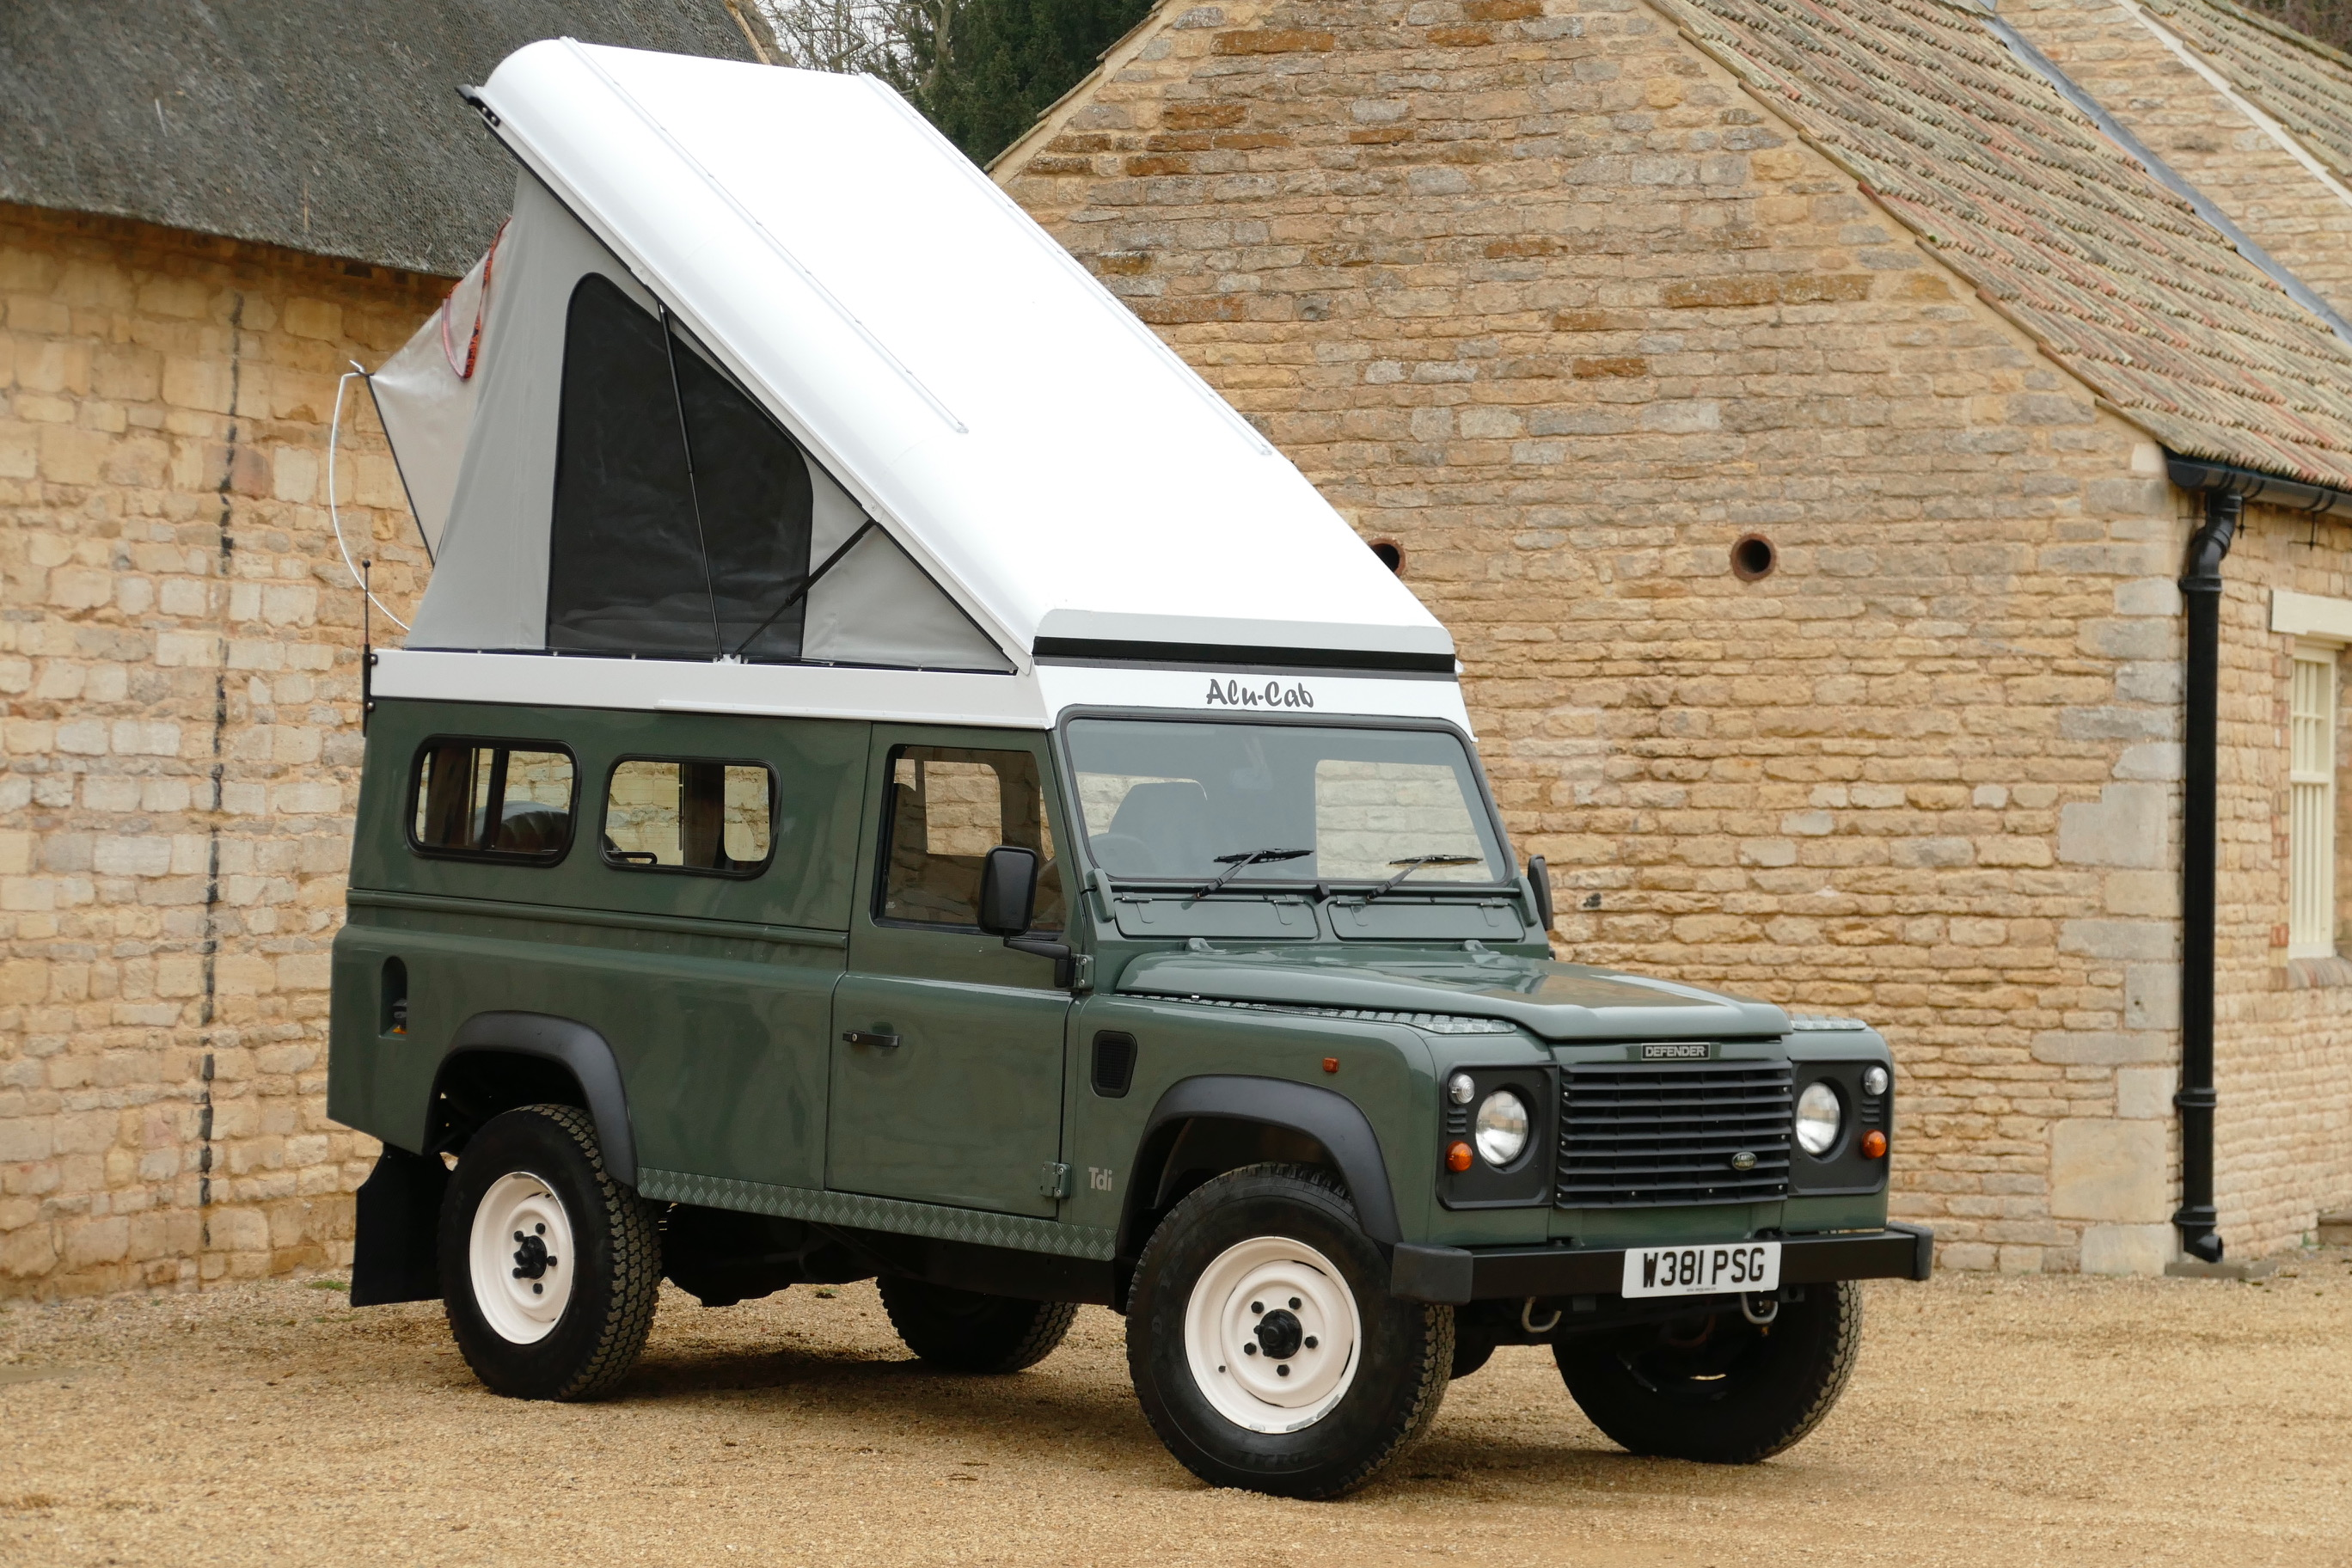 Land Rover Defender 110 Alu Cab Lift Up Roof Conversion